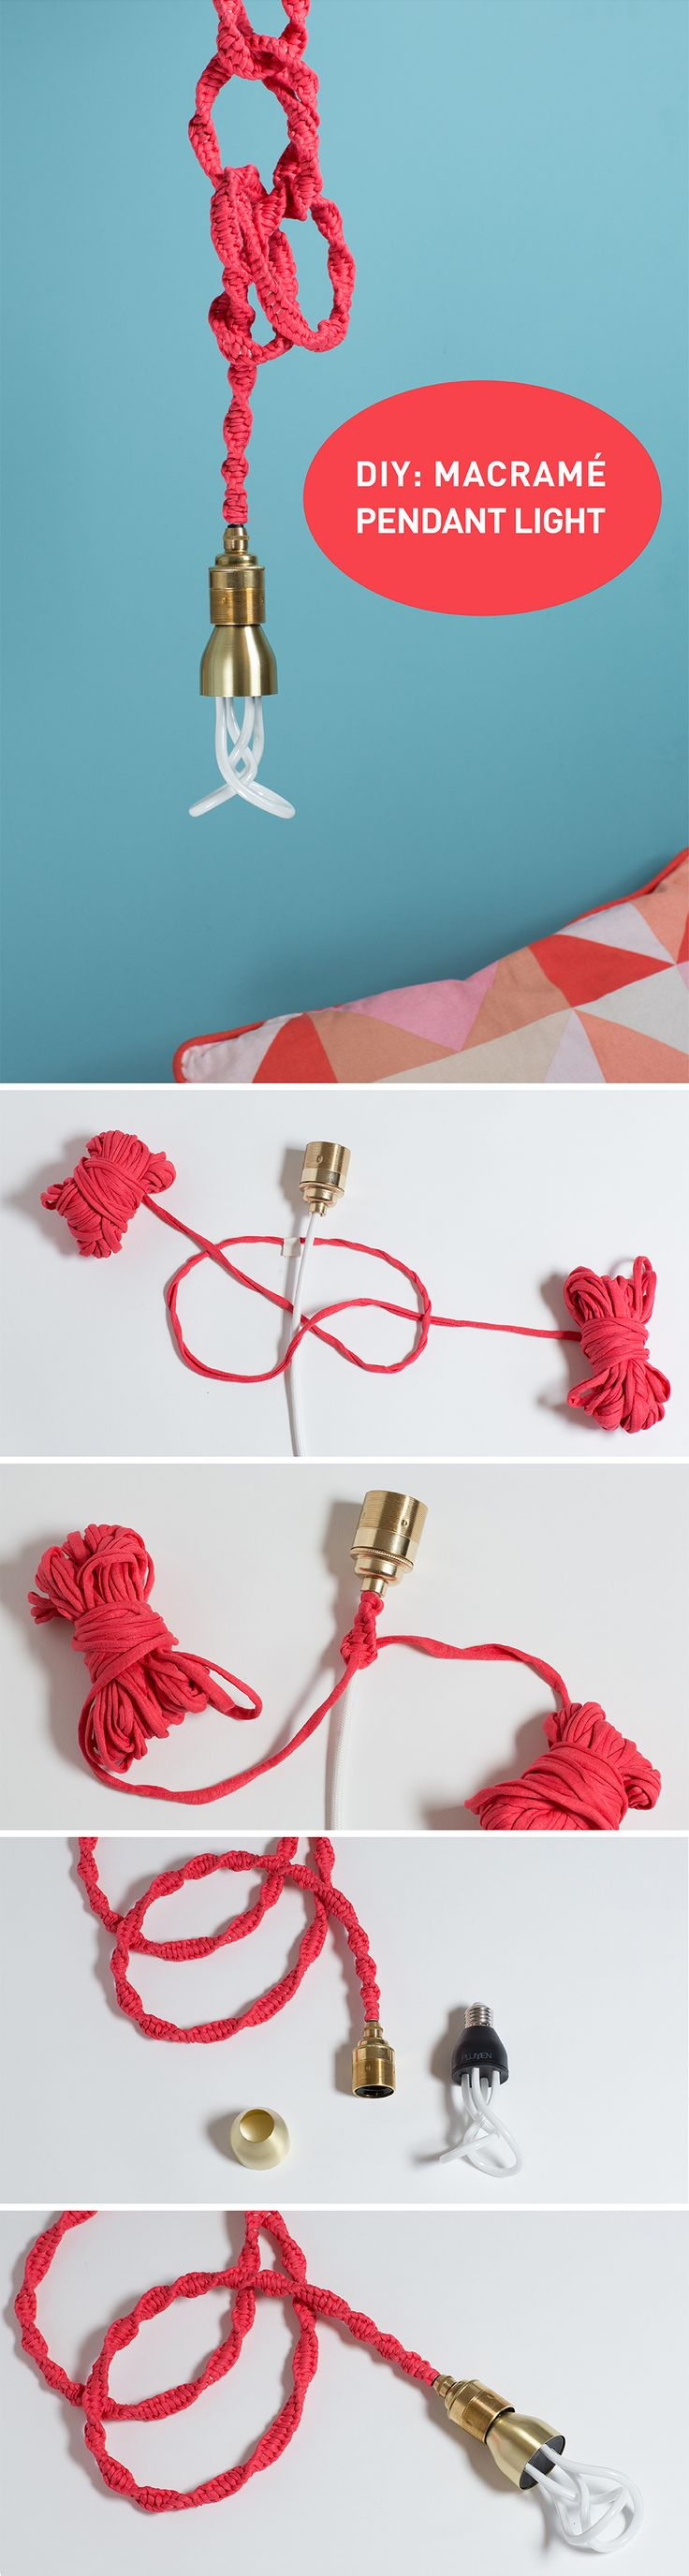 How to turn a plain cable into a fun, playful and colourful light using a very simple macramé knot.